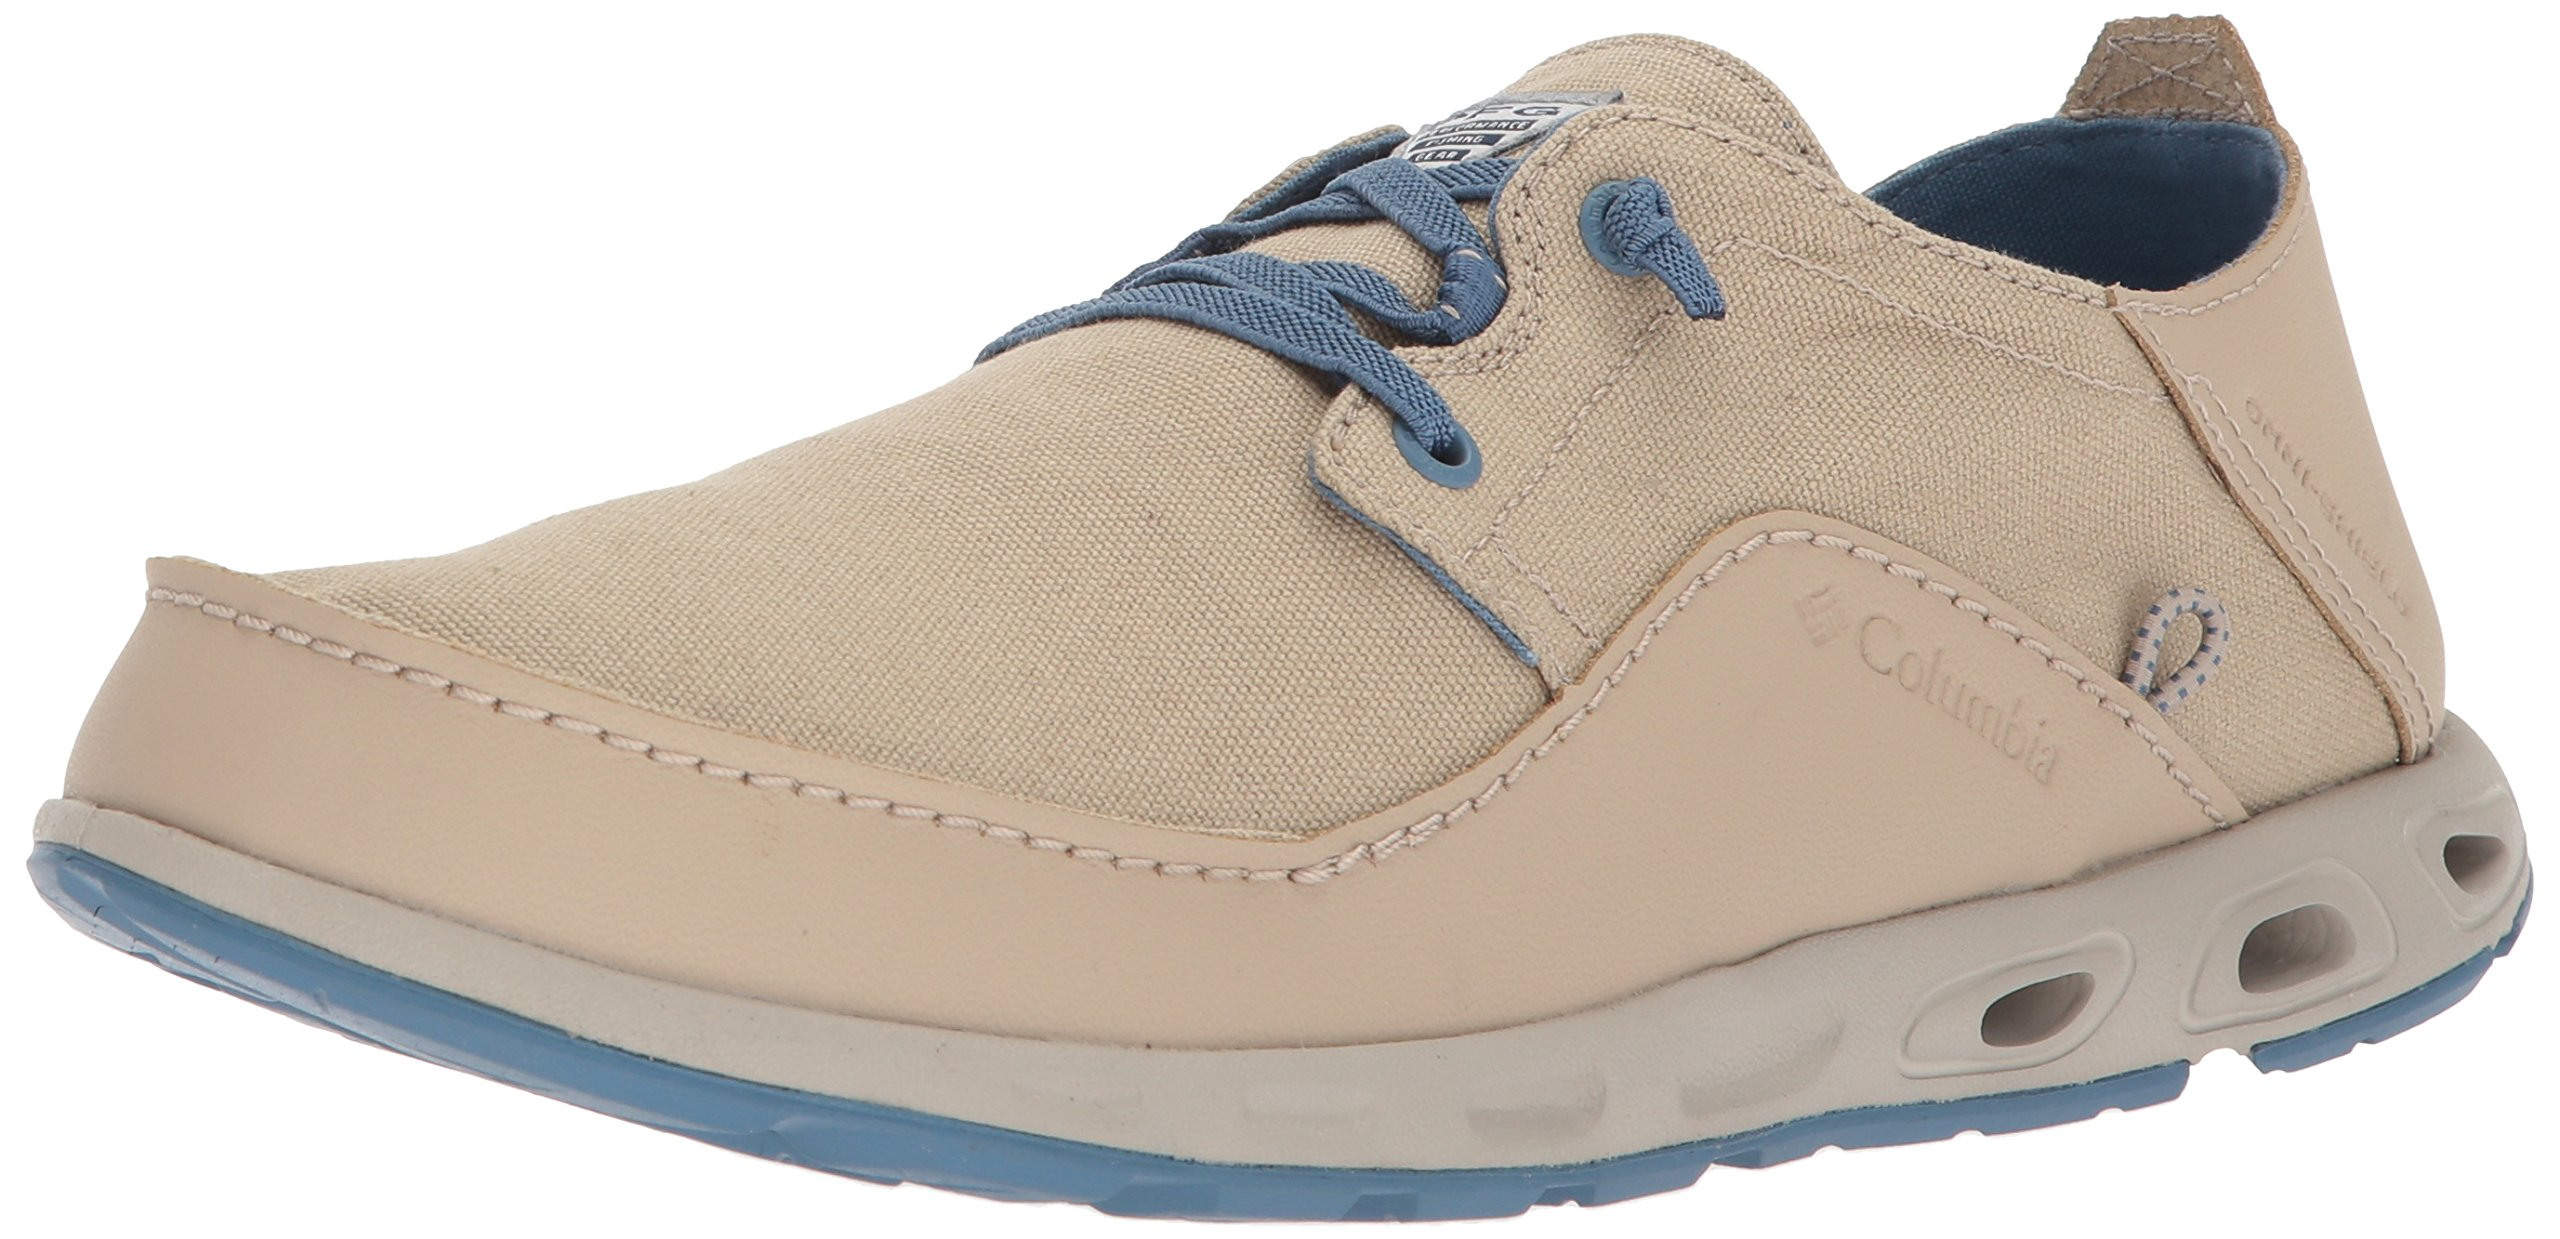 Columbia PFG Men's Bahama Vent Relaxed PFG Boat Shoe, Ancient Fossil, Steel, 7